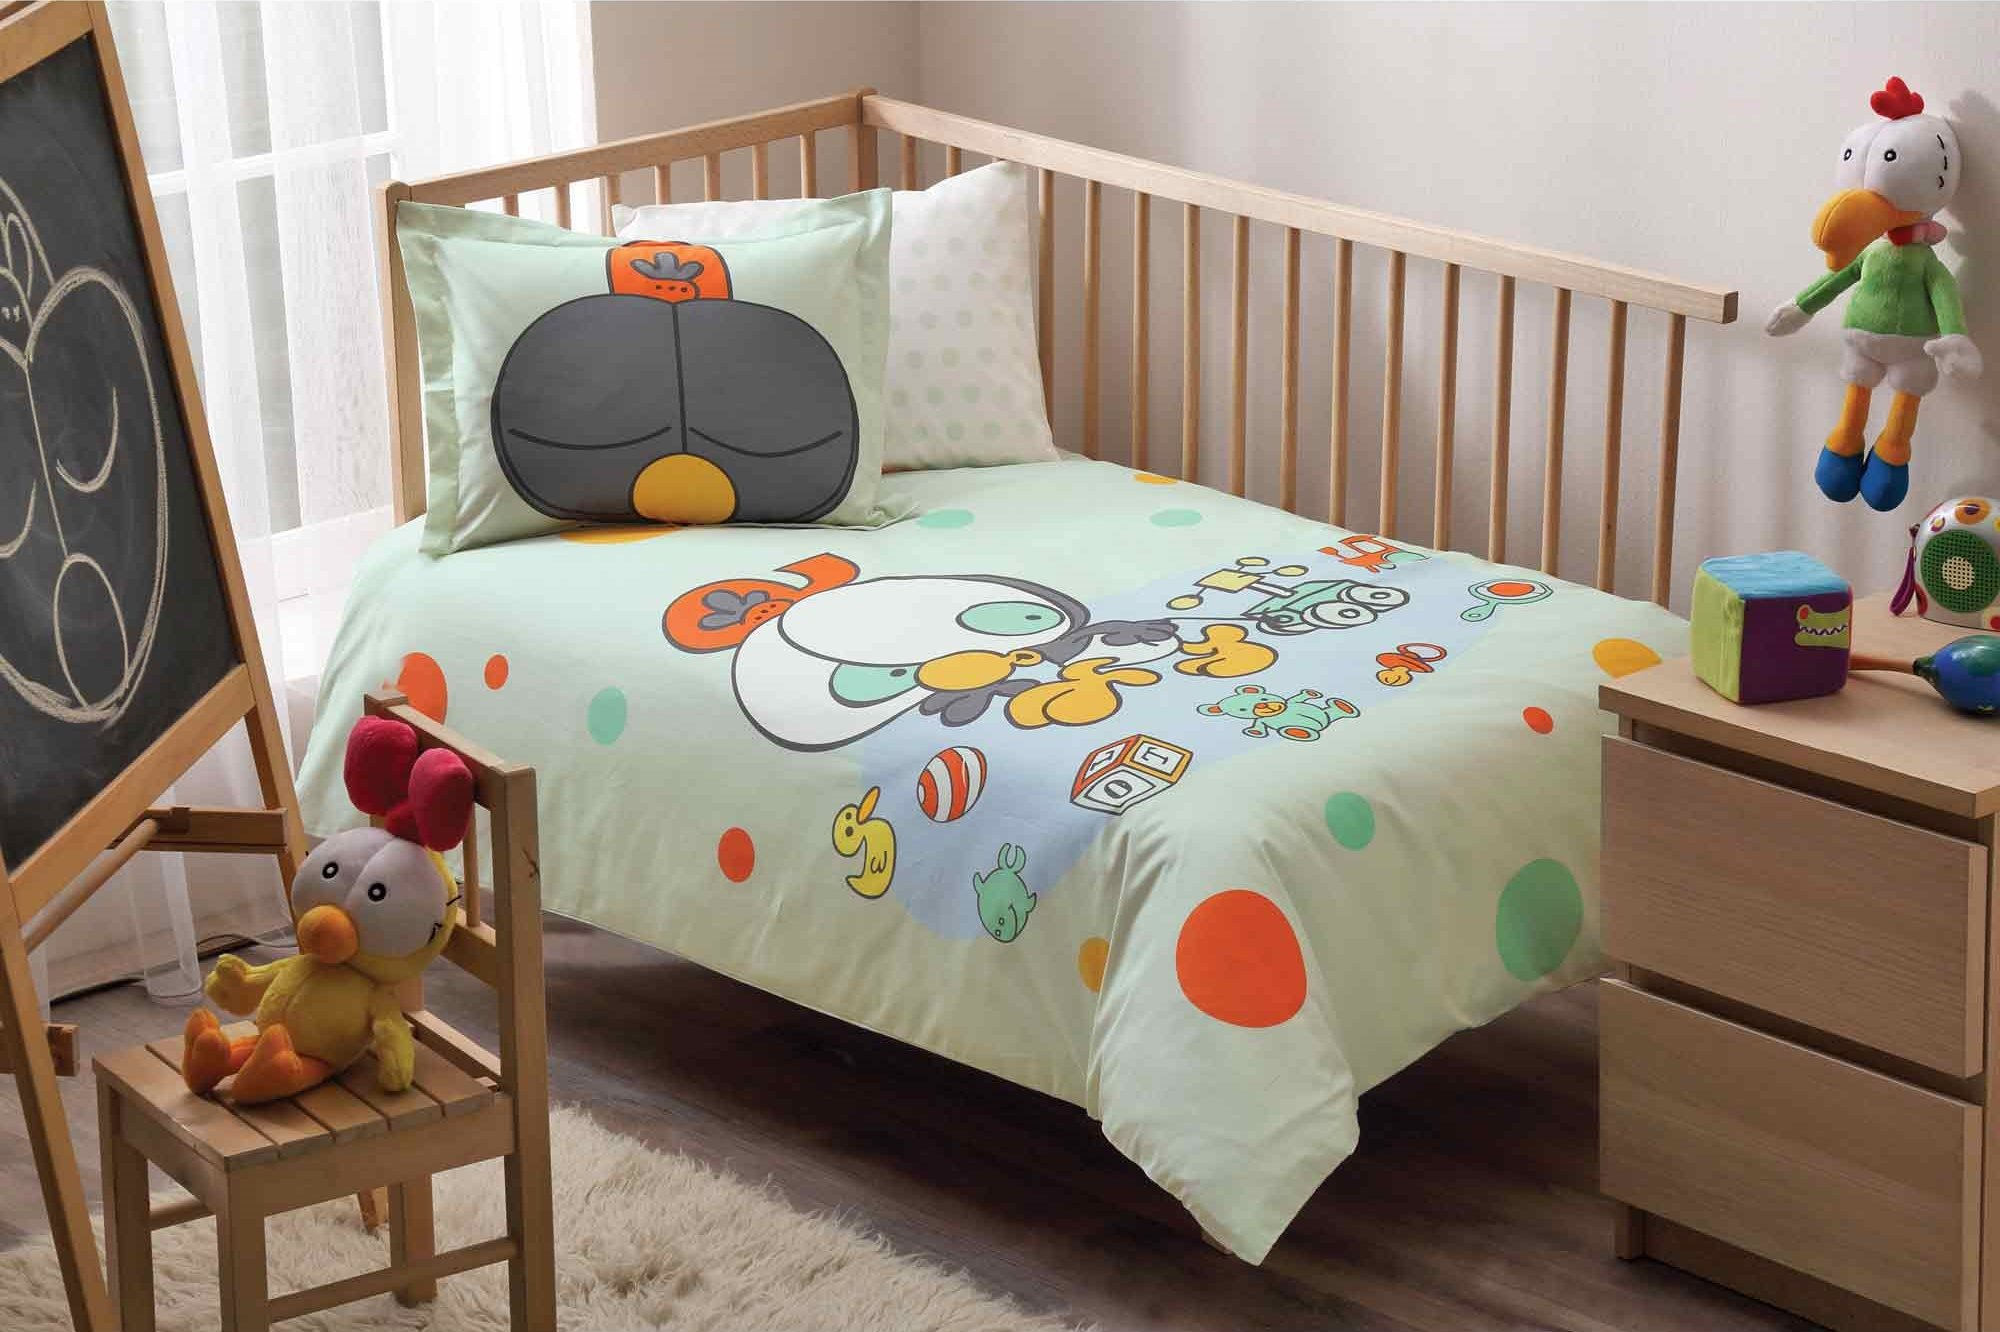 100% Organic Cotton Soft and Healthy Baby Crib Bed Duvet Cover Set 4 Pieces, Sizinkiler Olive Baby Bedding Set